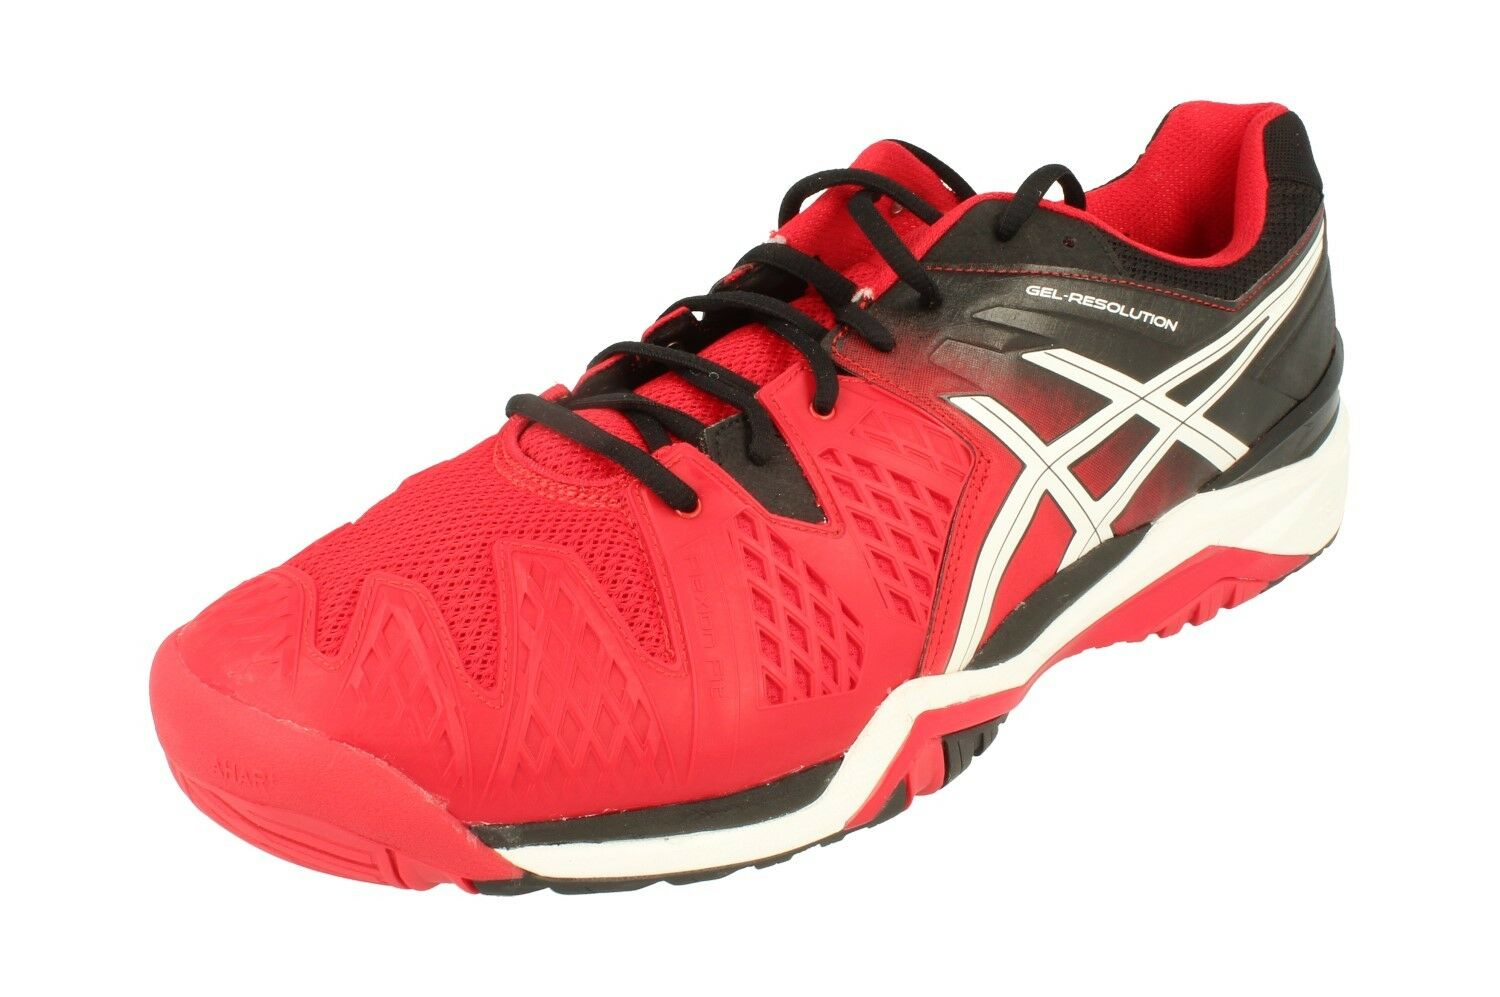 Asics Gel-Resolution 6 Mens Shoes Running Trainers E500Y Sneakers Shoes Mens 2390 6c4b39